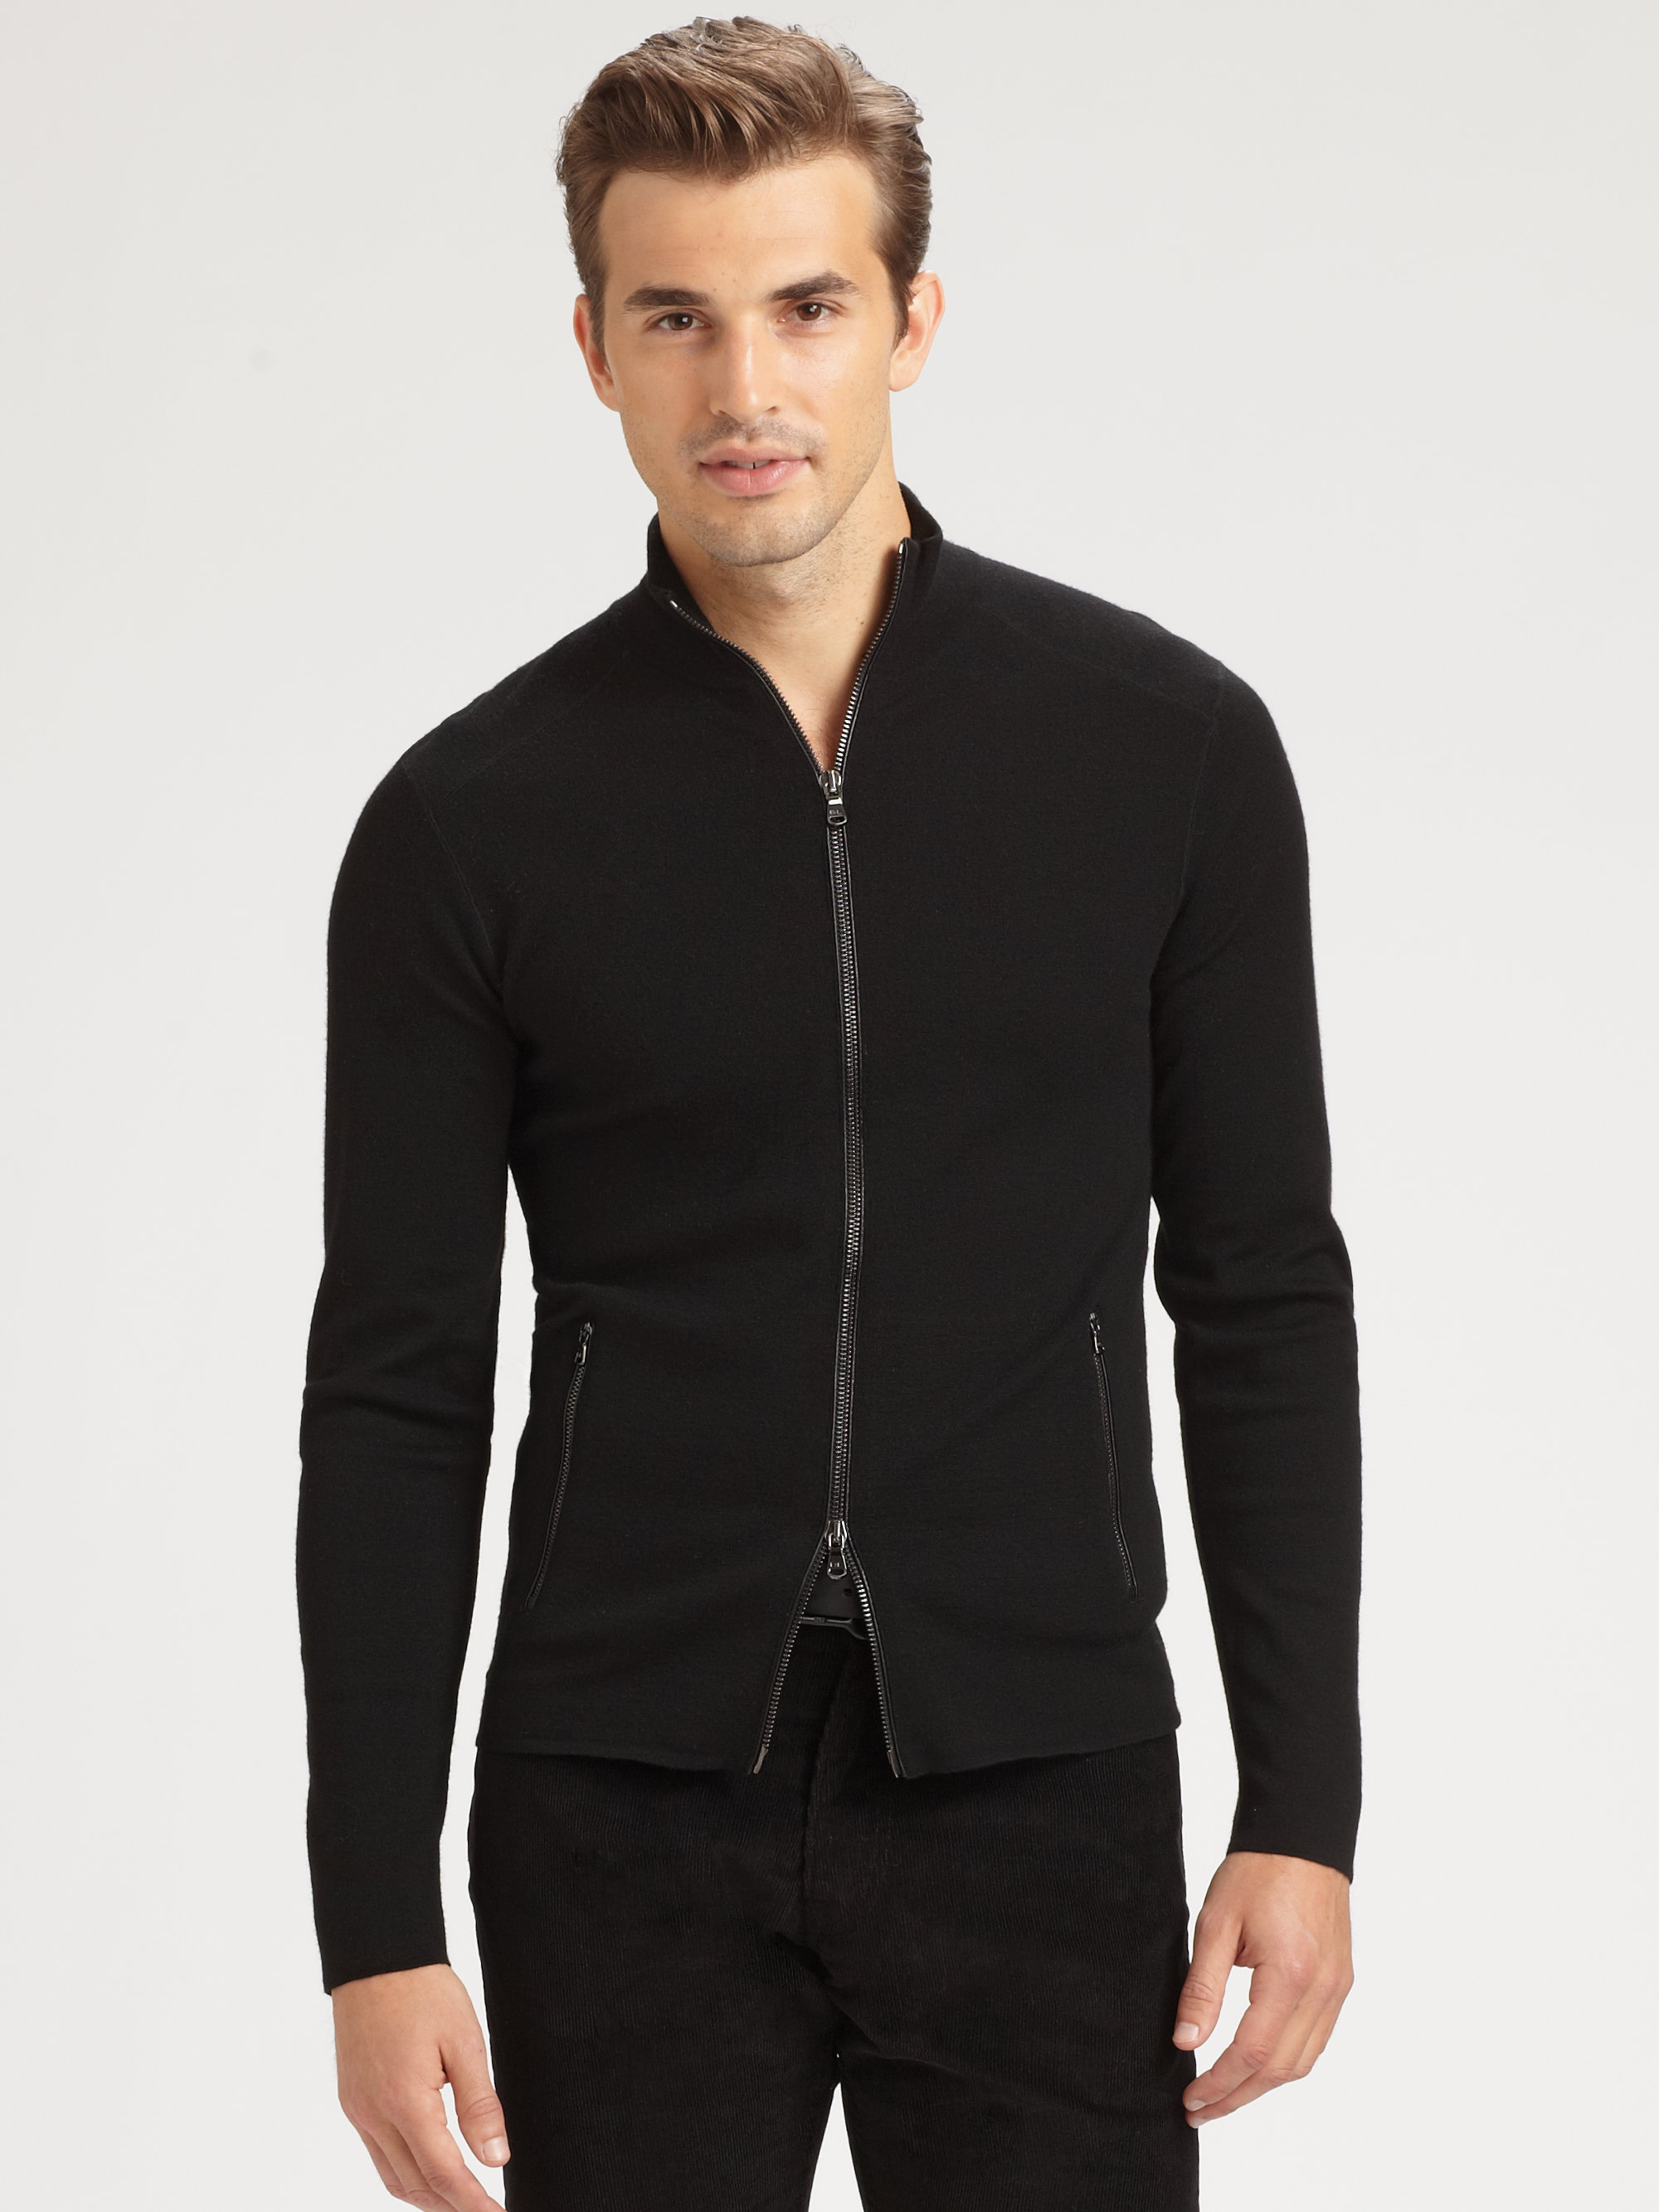 Lyst Ralph Lauren Black Label Fullzip Merino Wool Sweater In Black